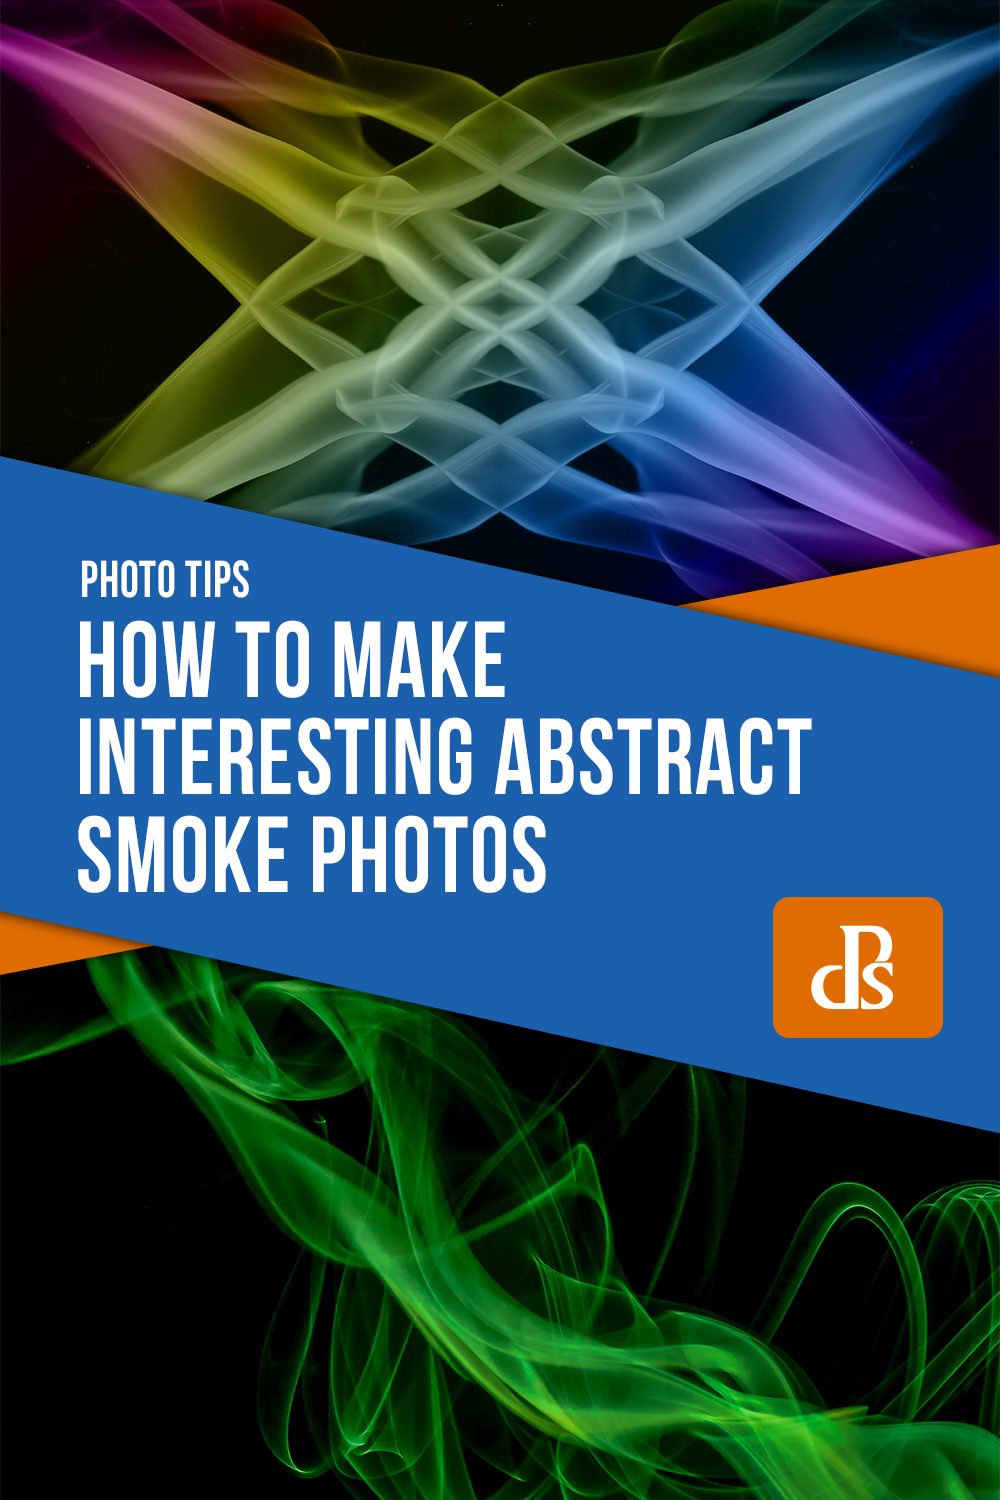 How to Make Interesting Abstract Smoke Photos